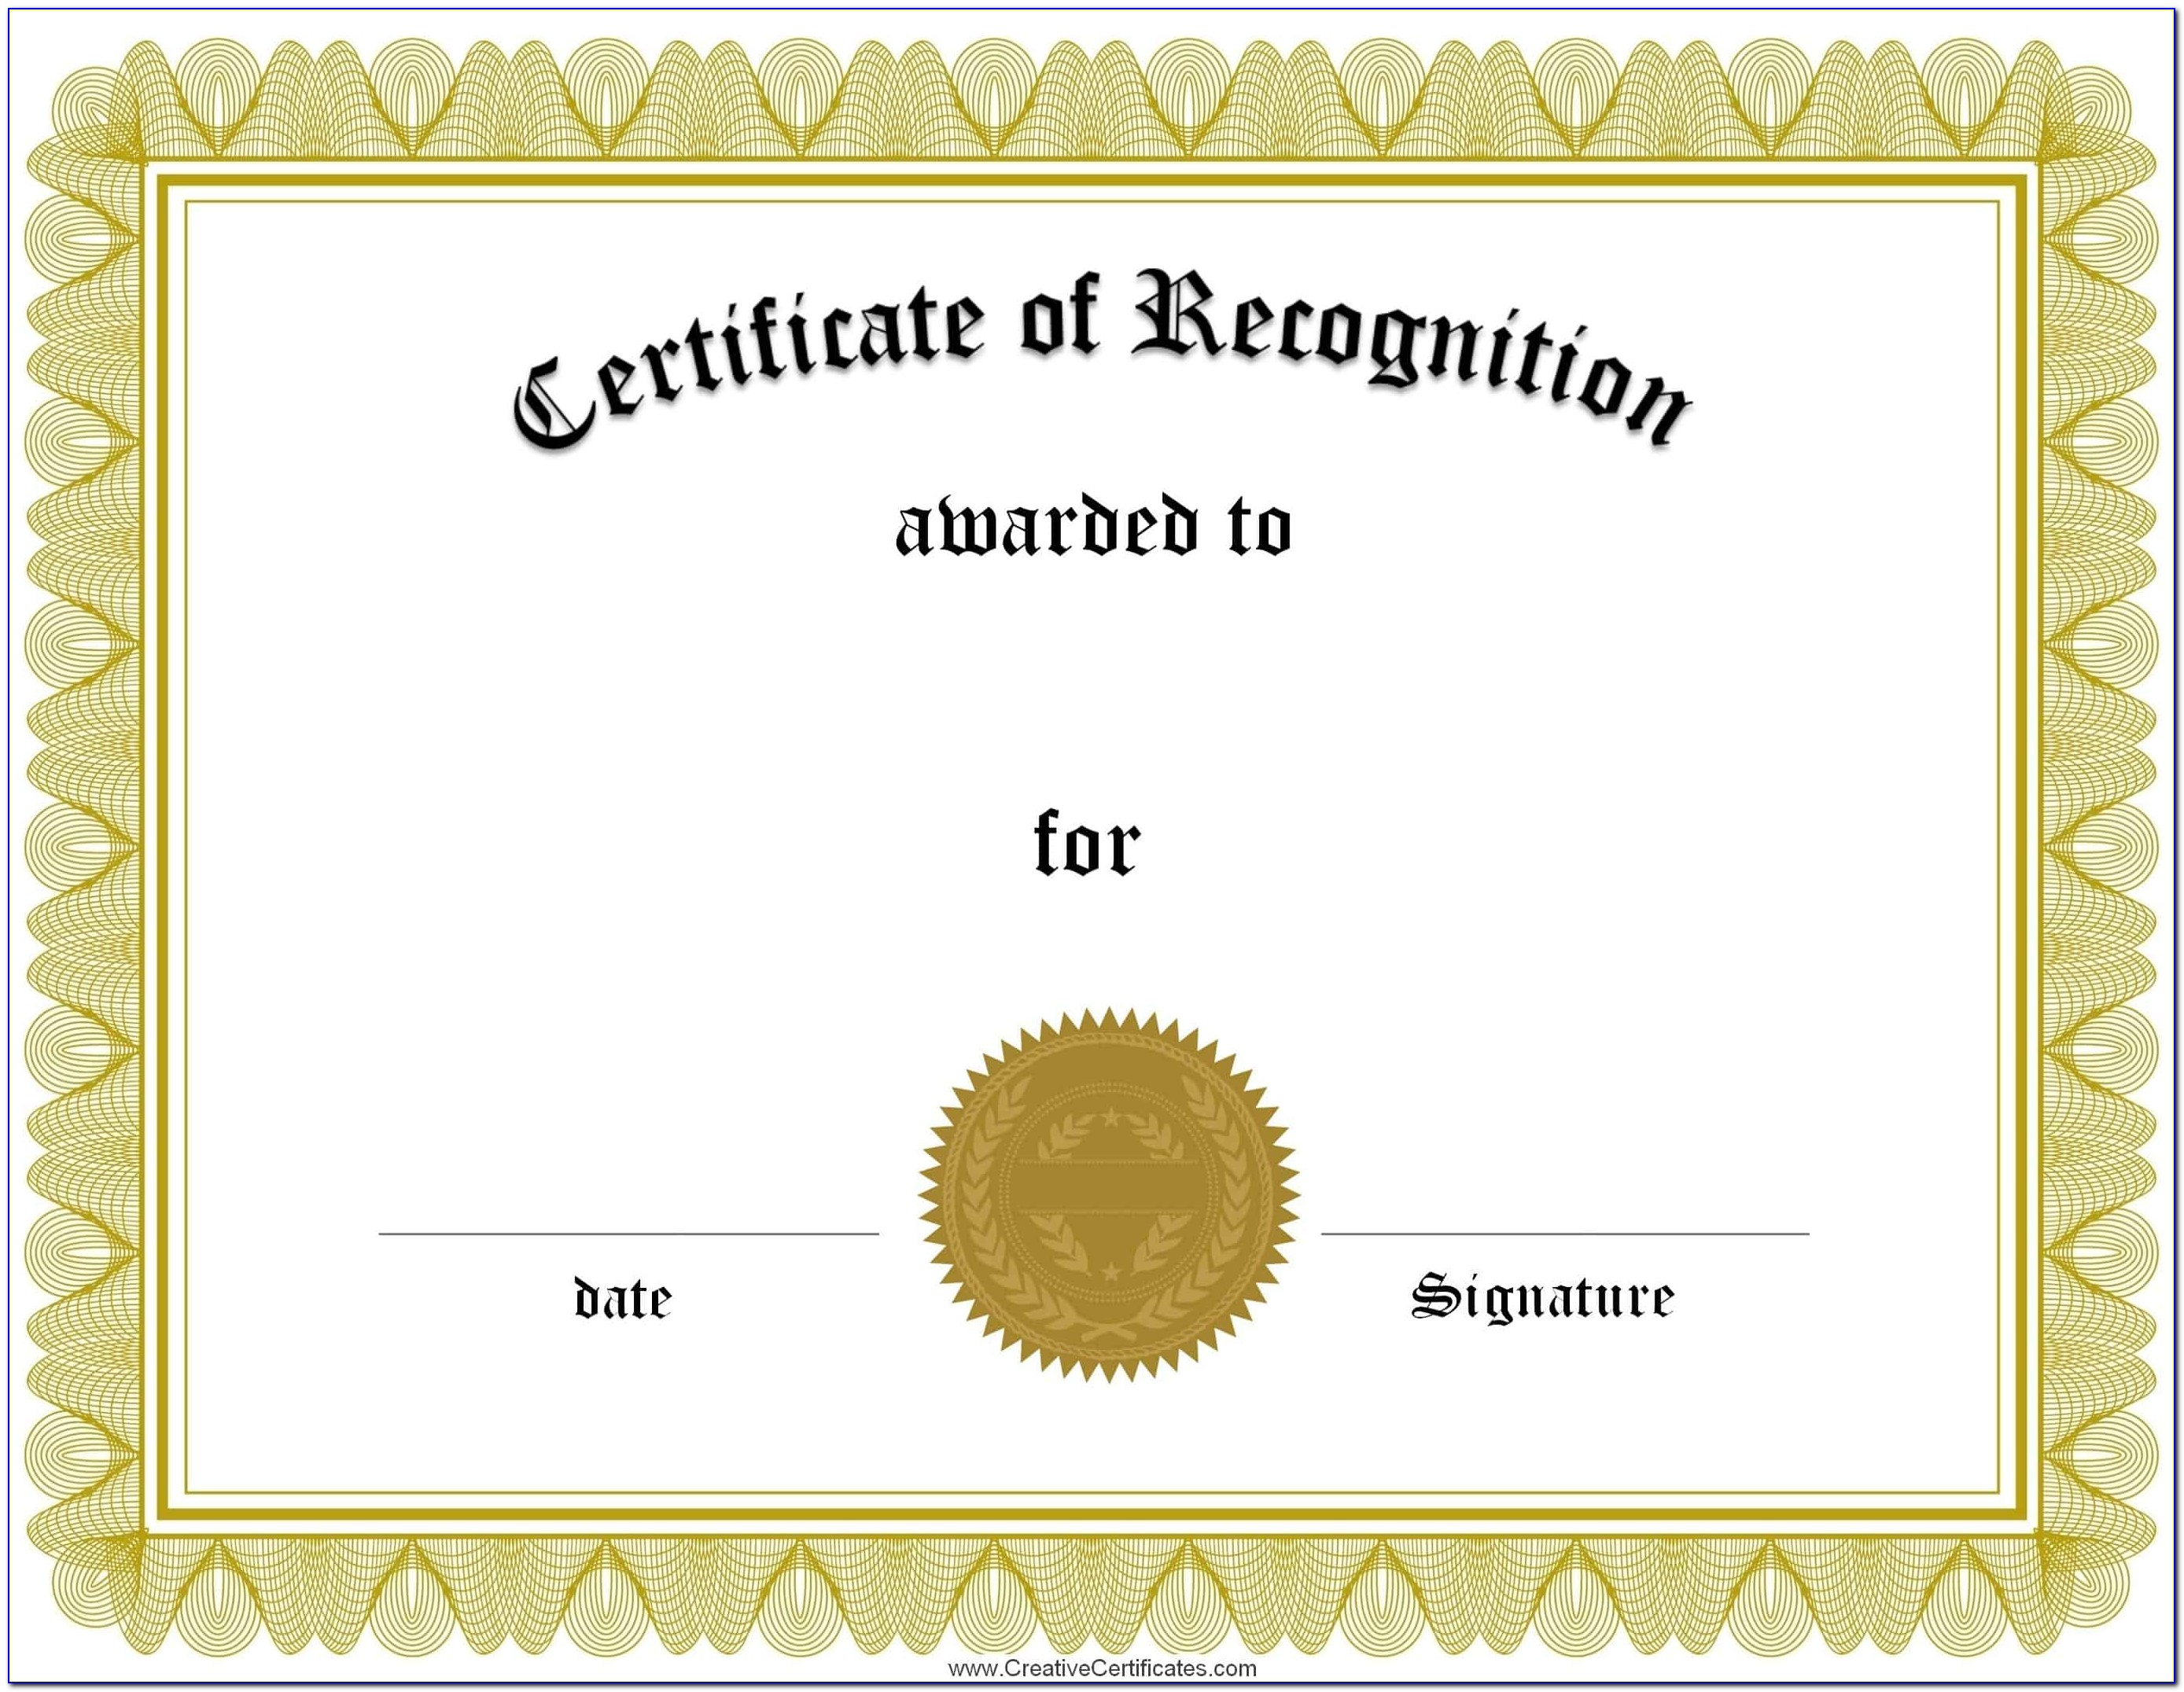 Certificates Of Recognition Templates Free